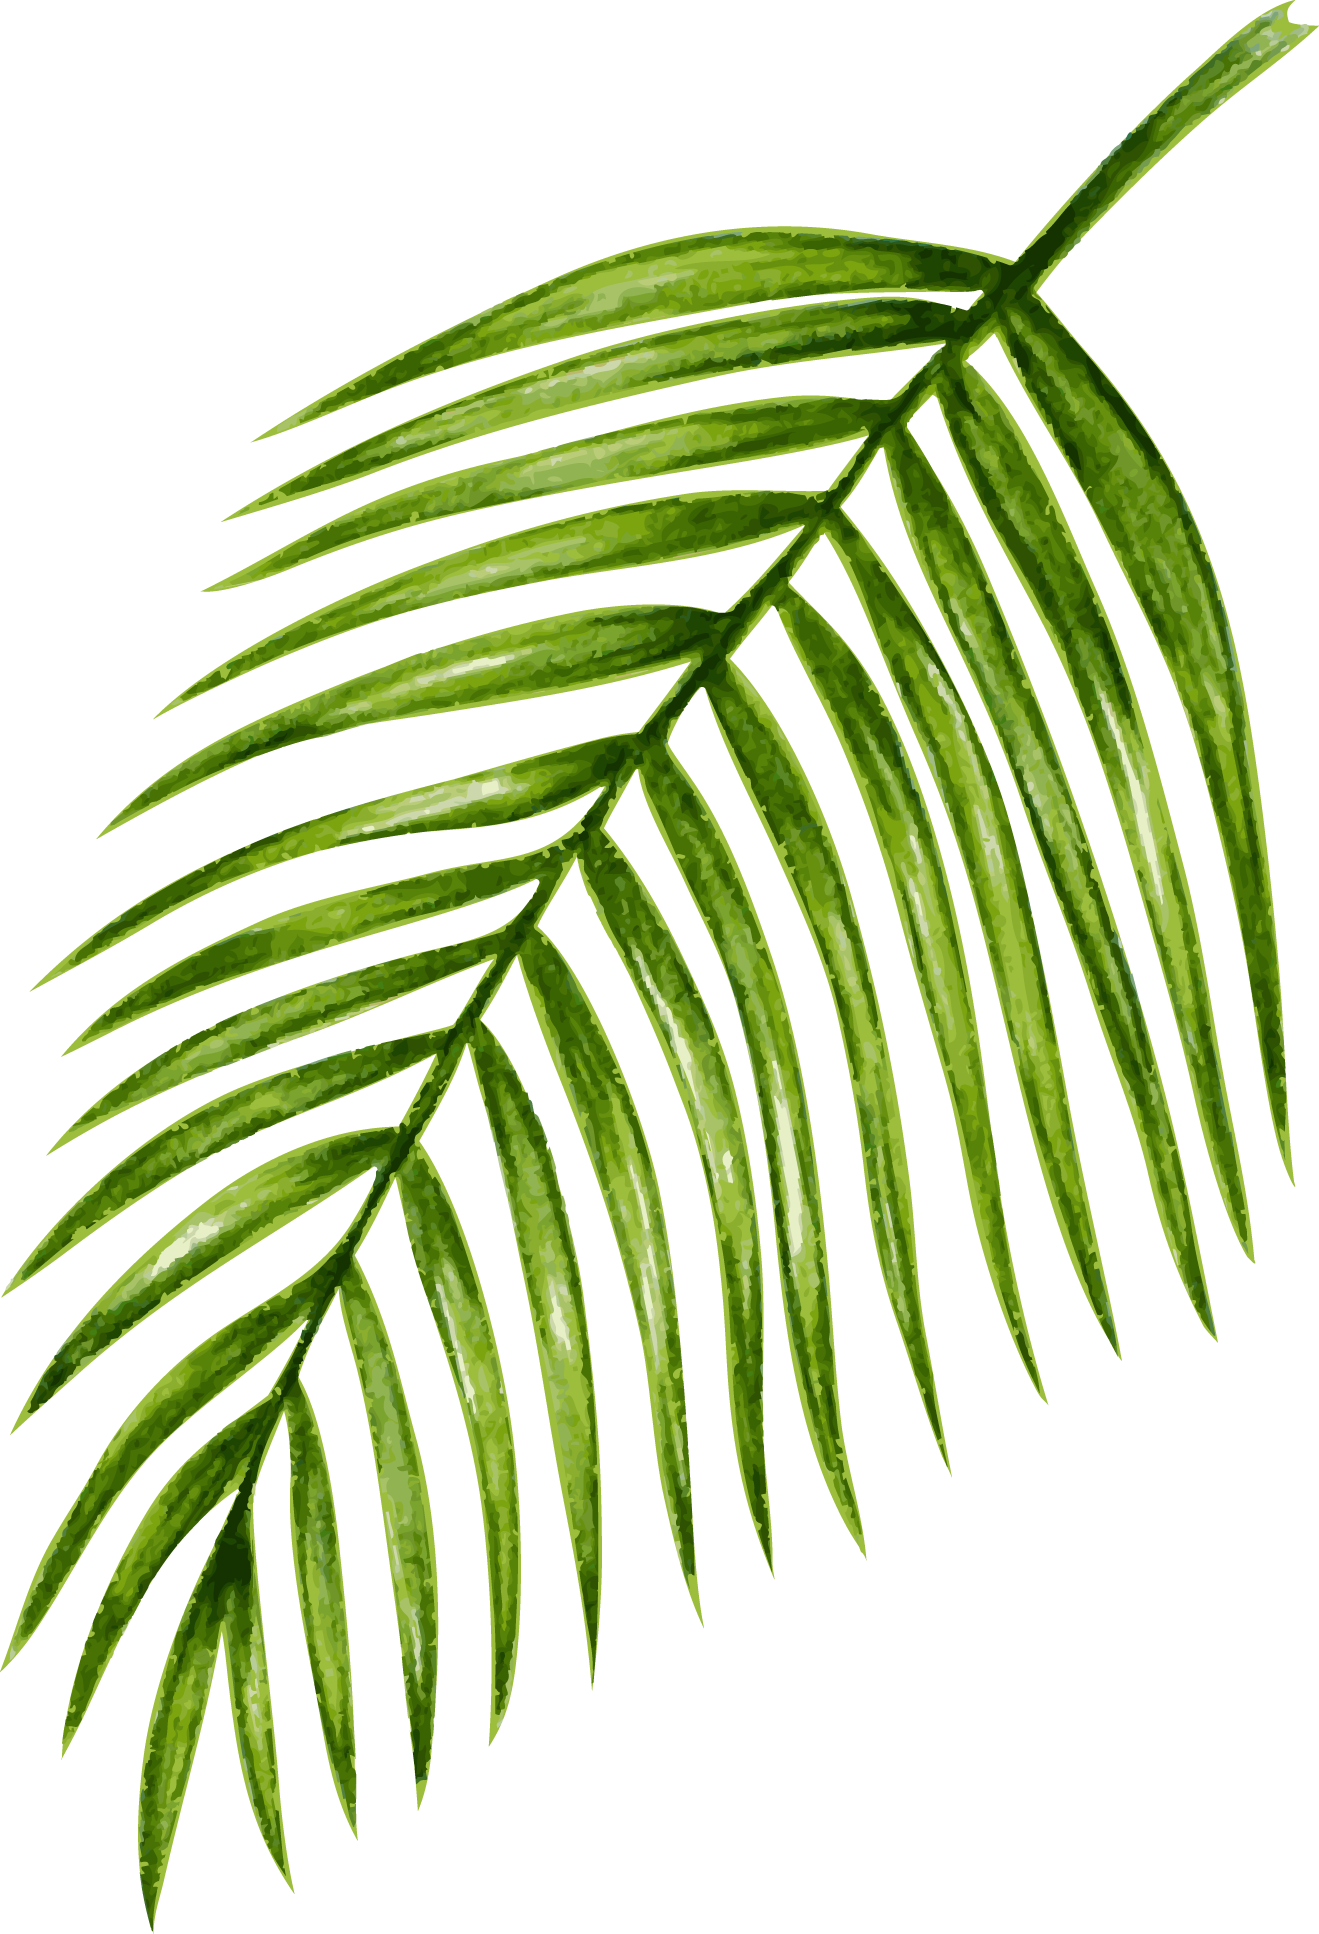 palm03.png